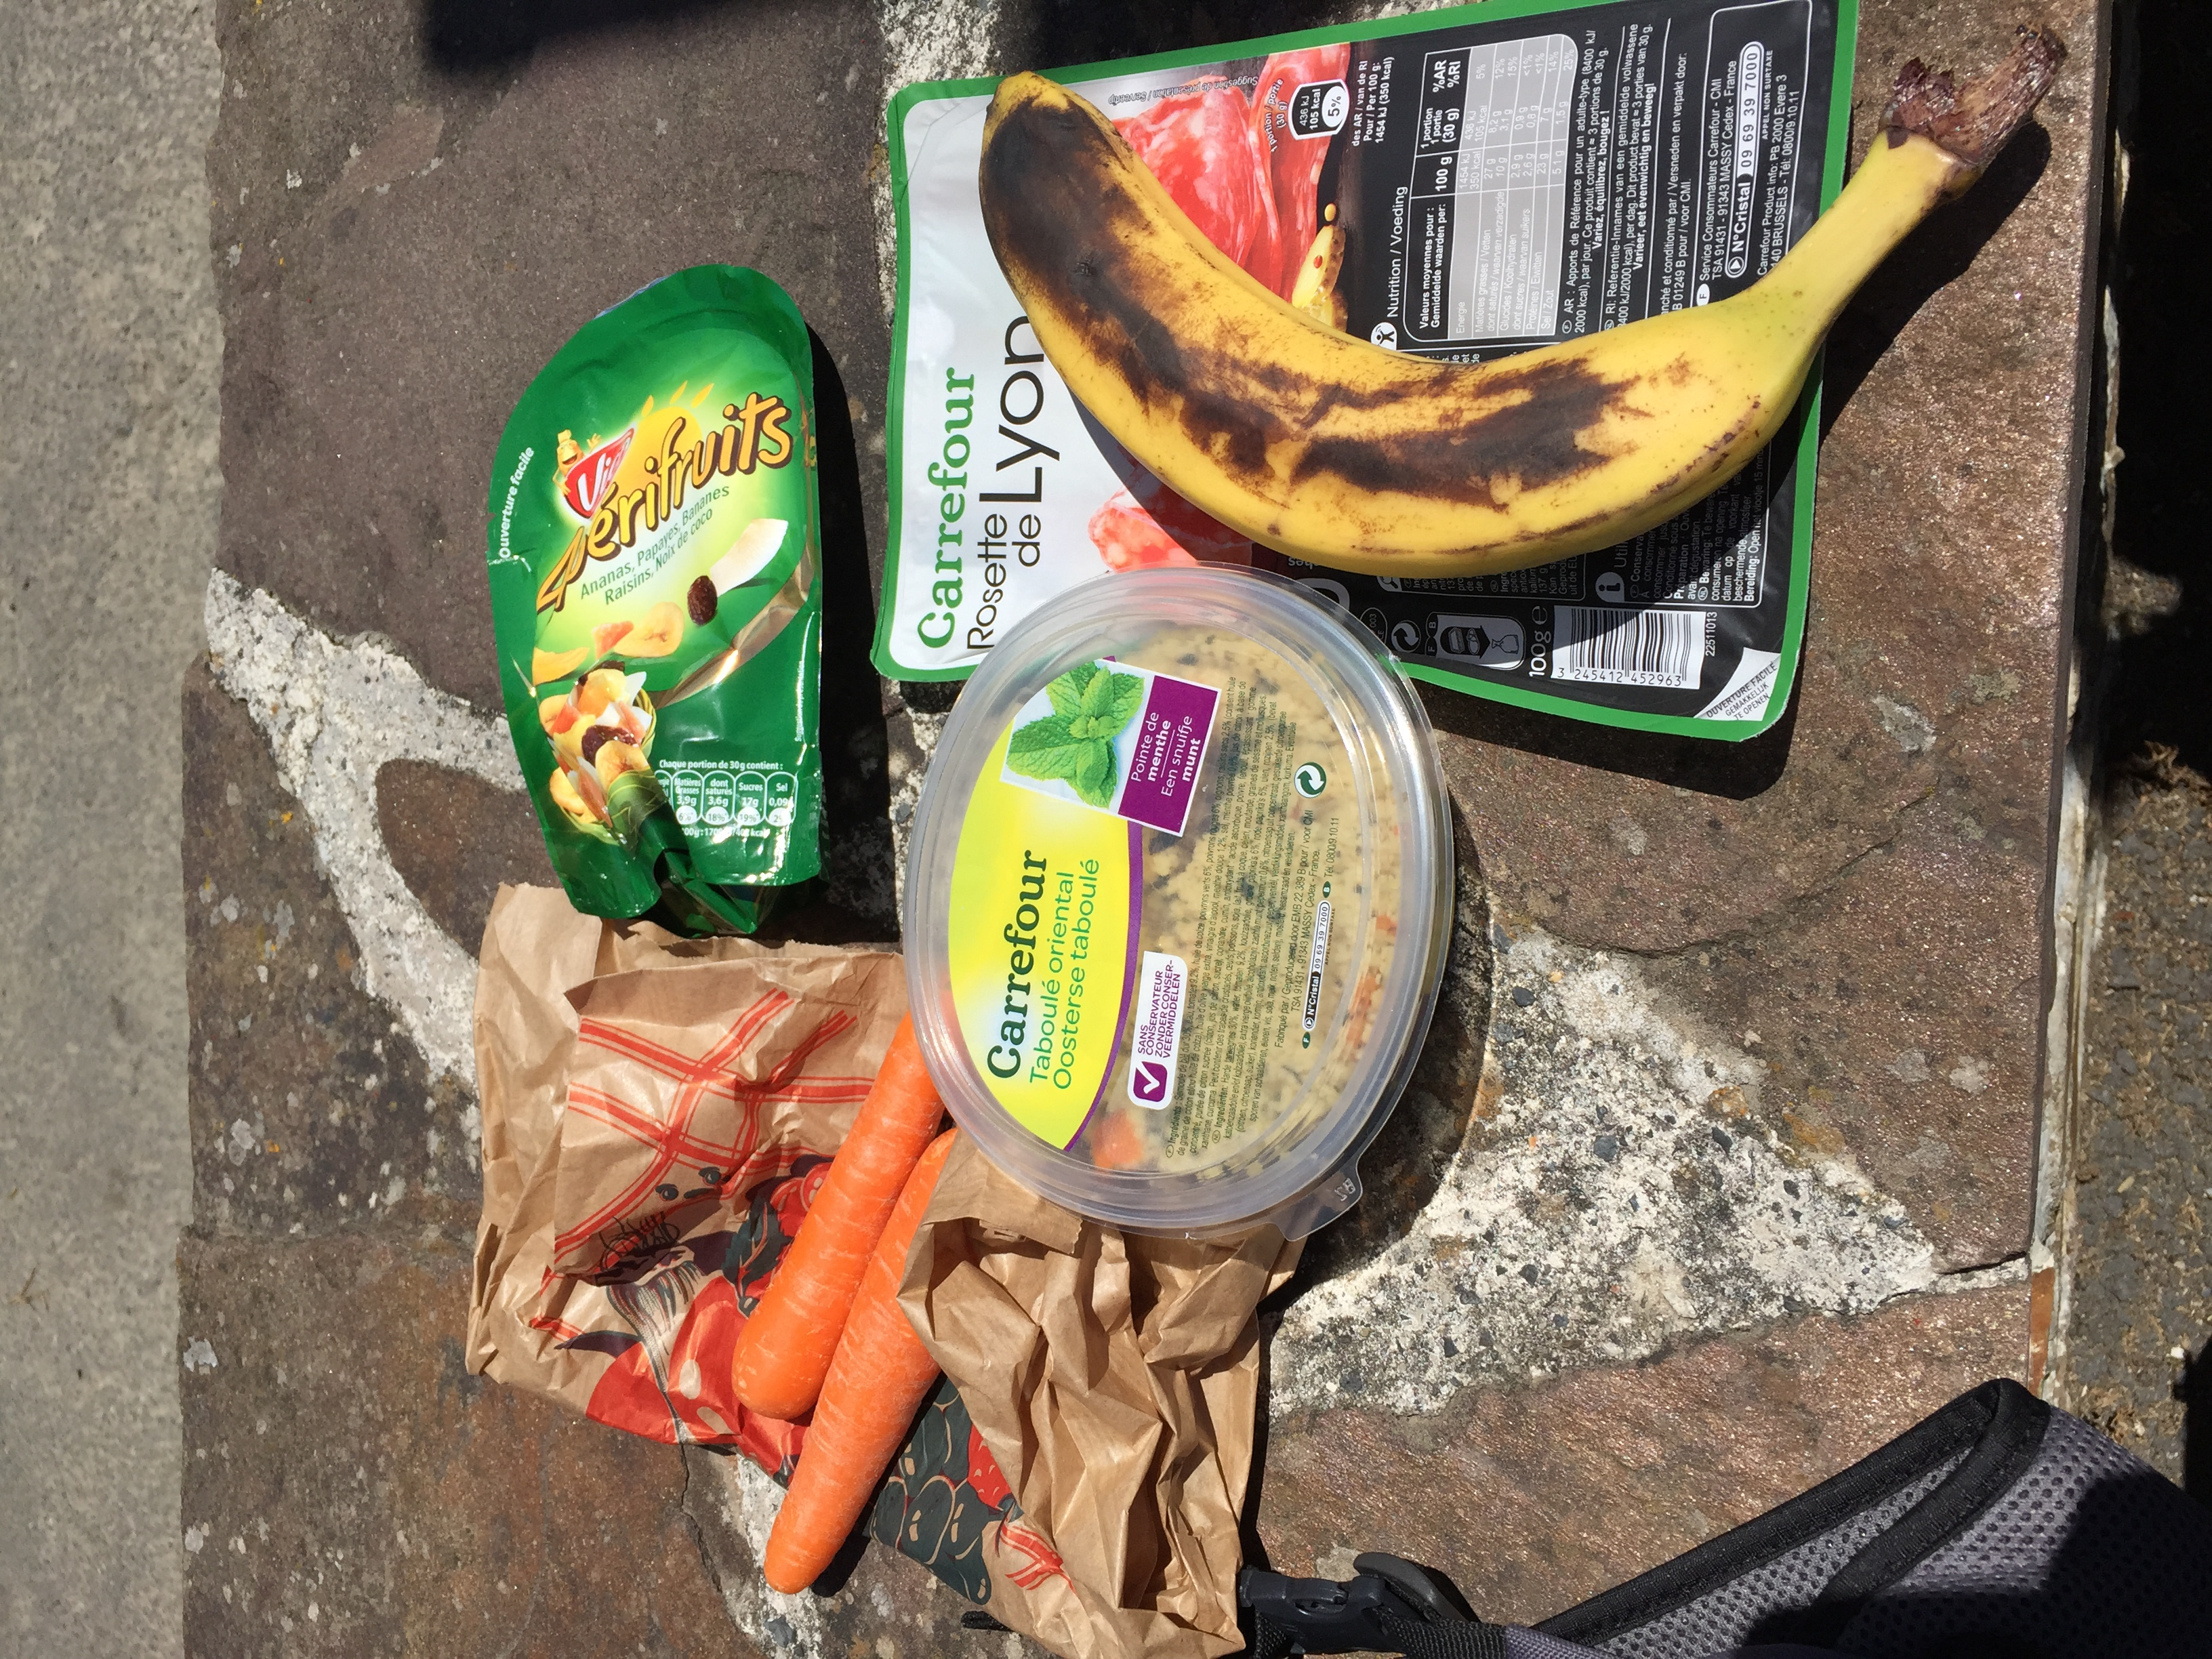 Typical lunch when I'm on the bike.